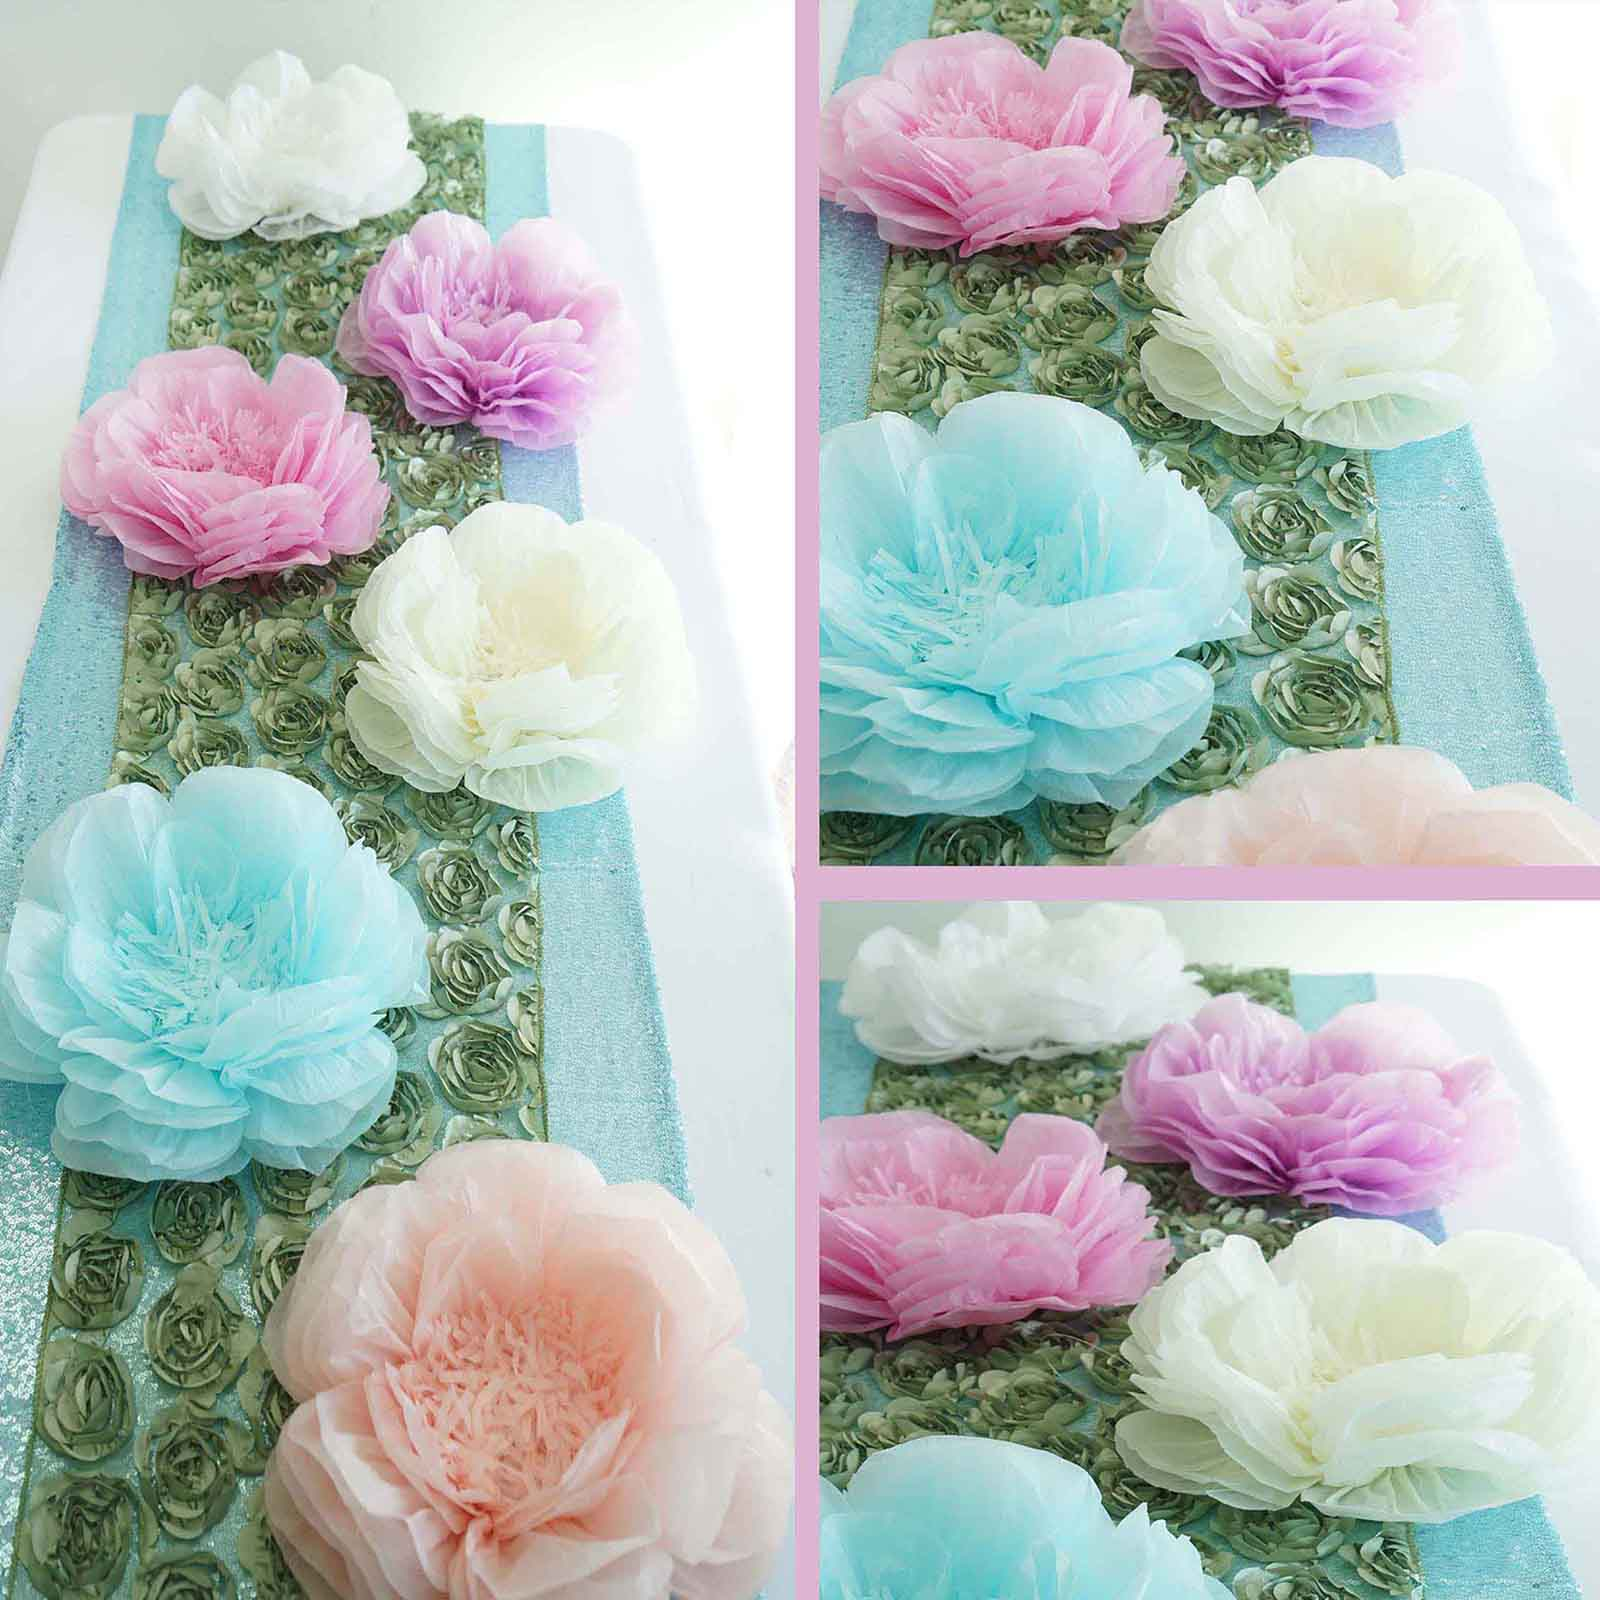 Details About 2 Pack 12 16 Peach Diy Giant Carnation Paper Flower Wall Backdrop Decor